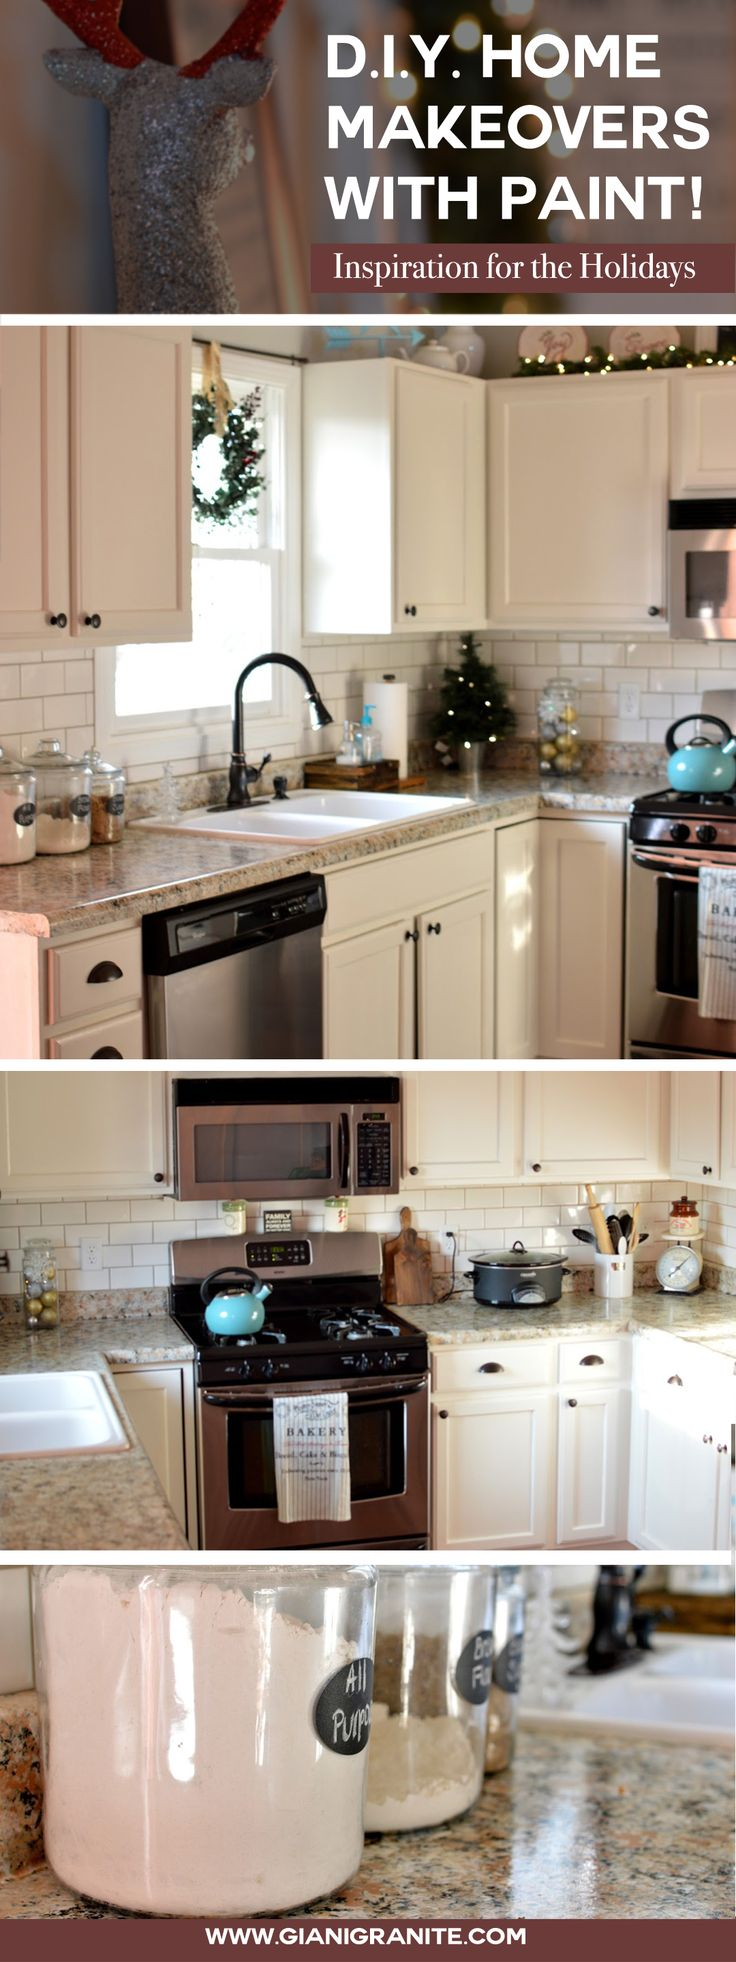 Best 277 Giani™ Granite Countertop Paint images on Pinterest ...